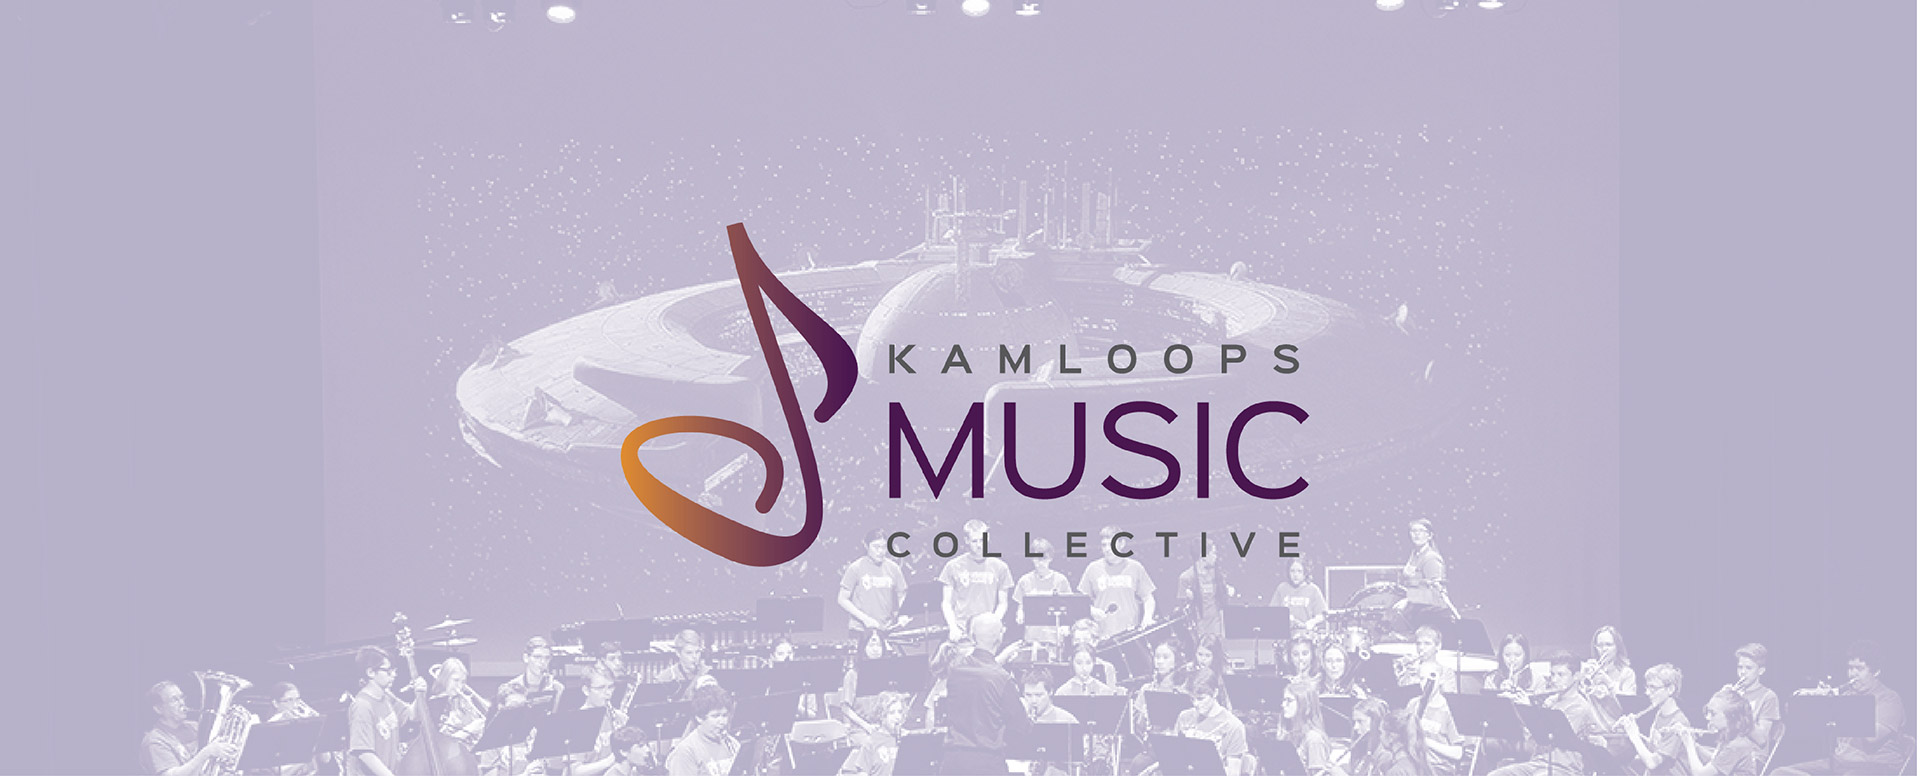 Social Enterprise Profile: Kamloops Music Collective